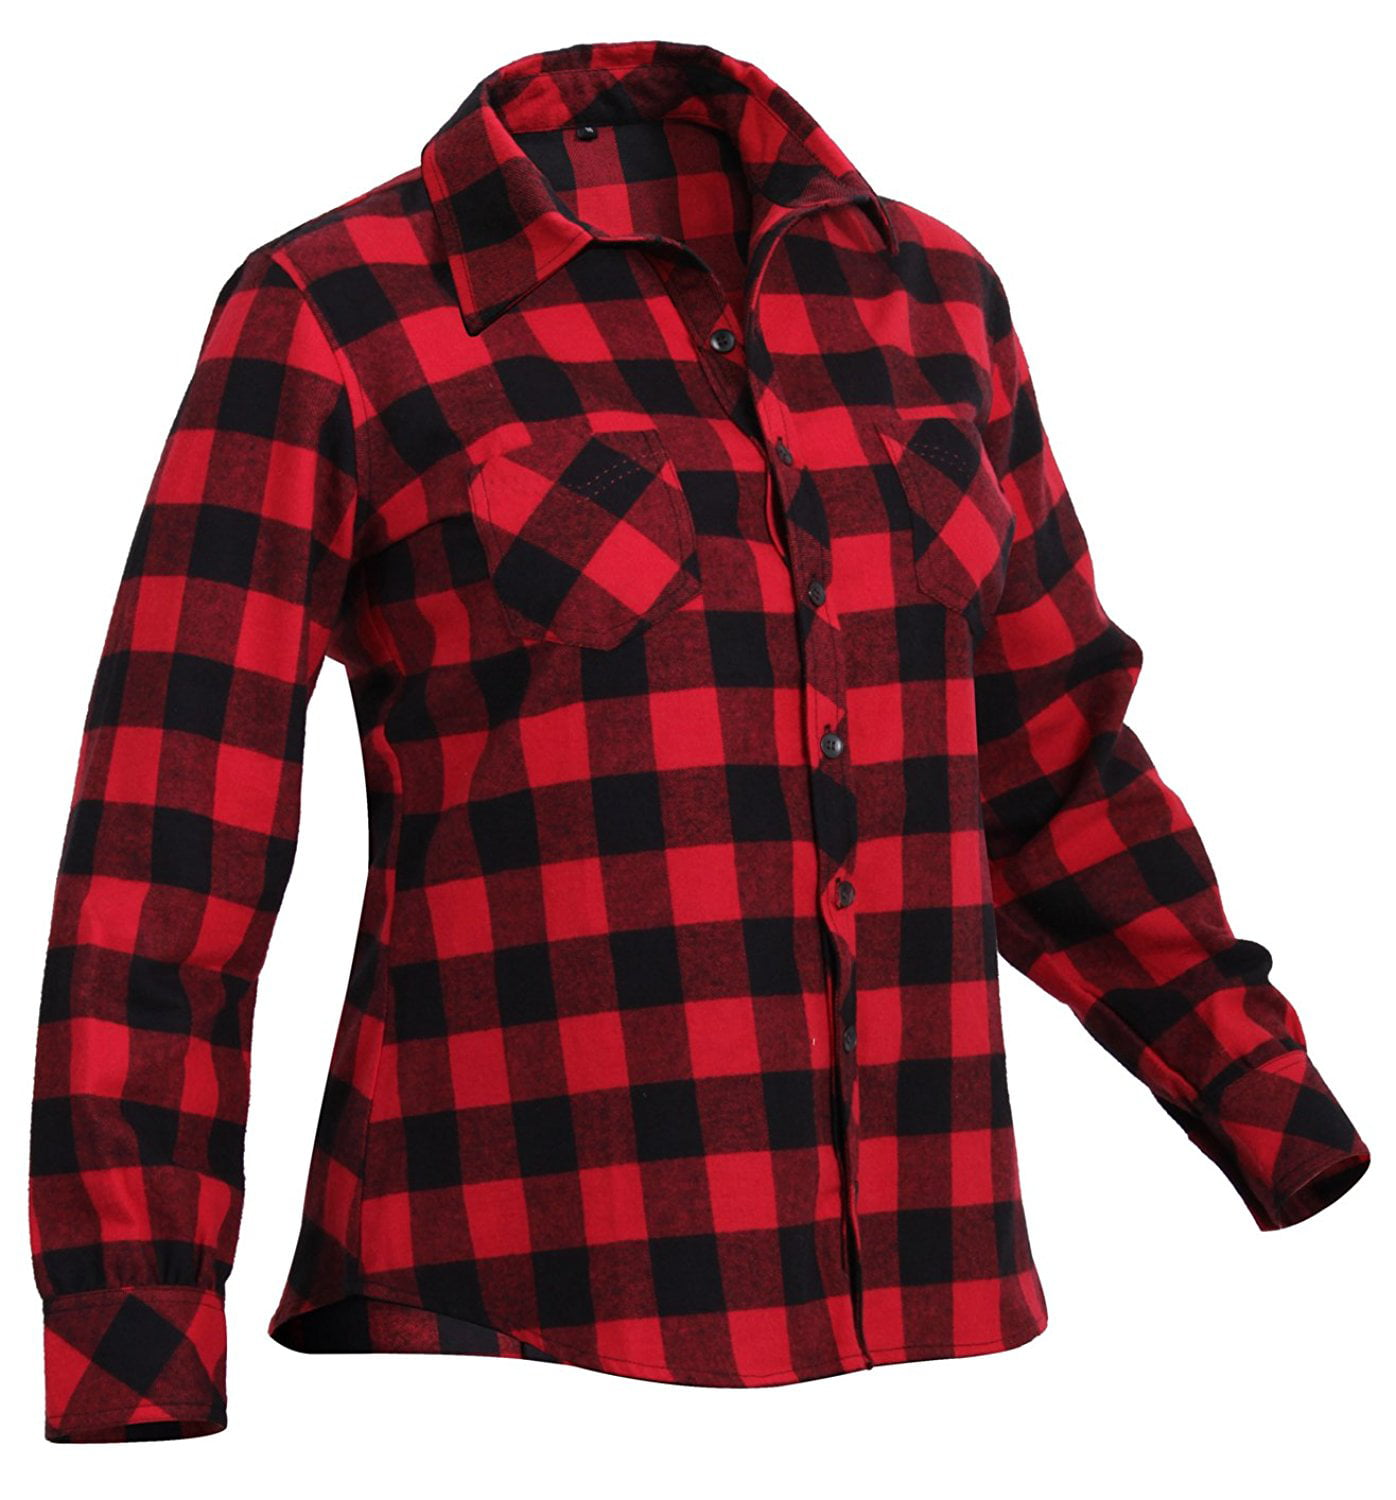 0a56ae120 Rothco Womens Plaid Flannel Shirt - Red, Small - image 1 of 1 zoomed image